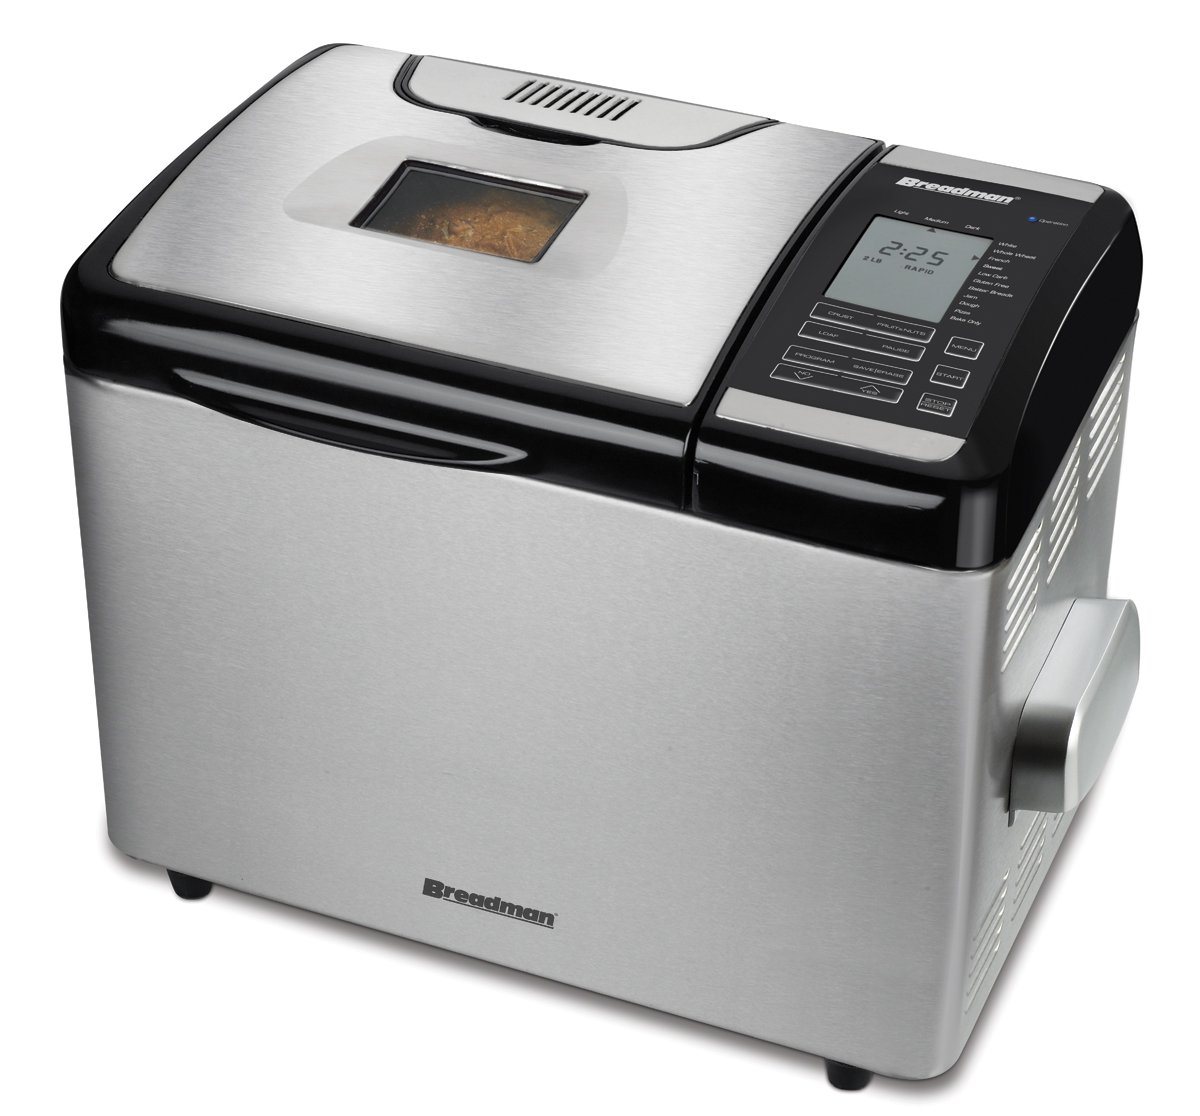 Breadman TR2700 Stainless-Steel Programmable Convection Bread Maker Black & Decker